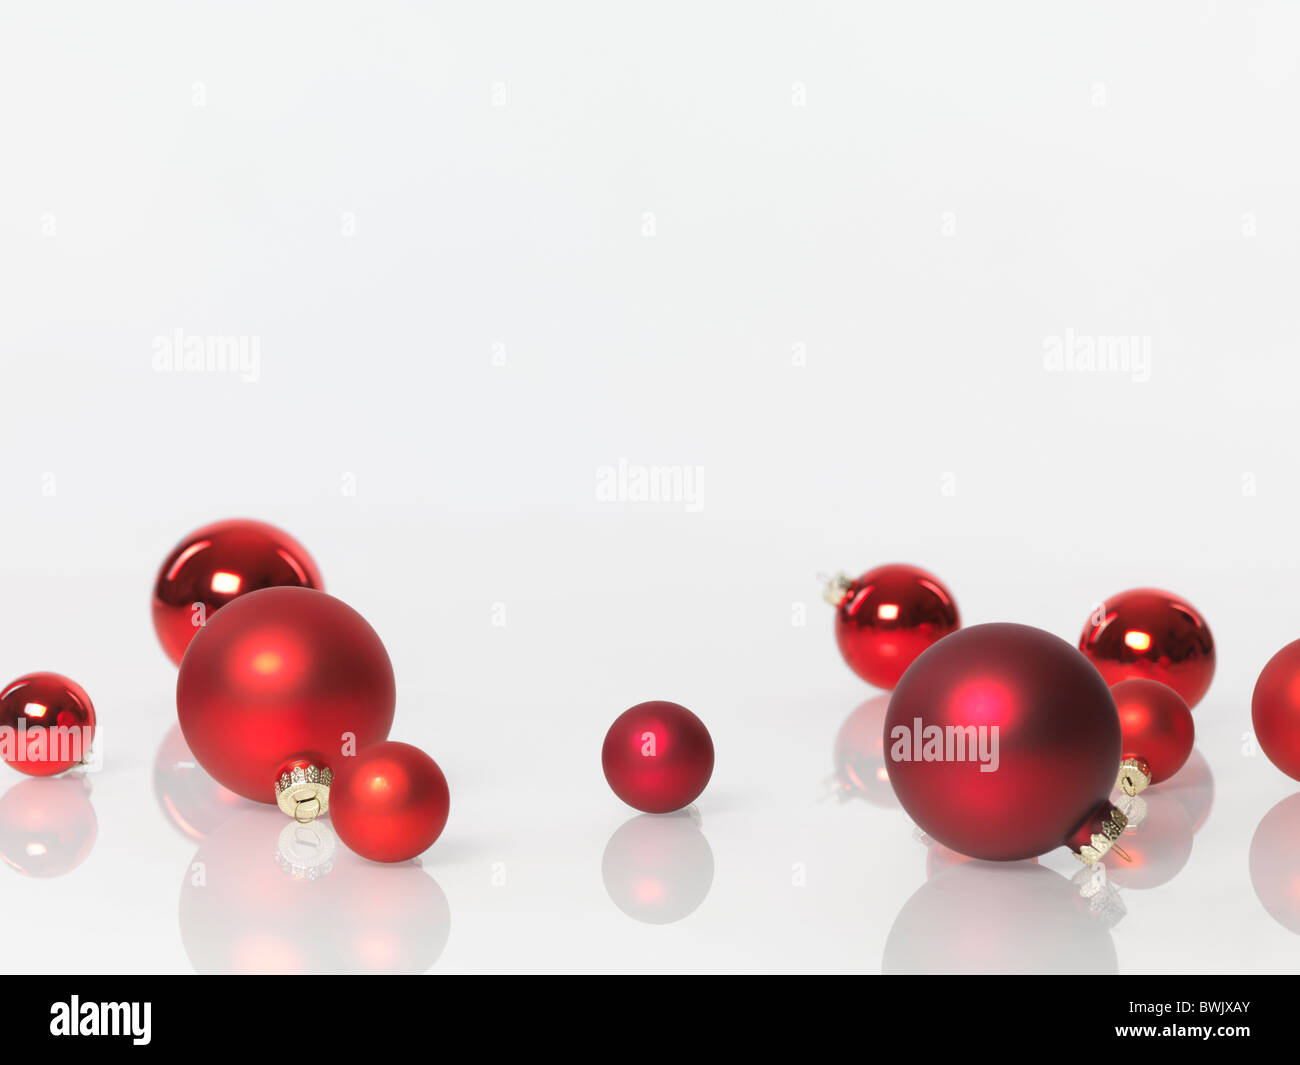 christmas decoration ornament red glass baubles isolated on white background with copy space